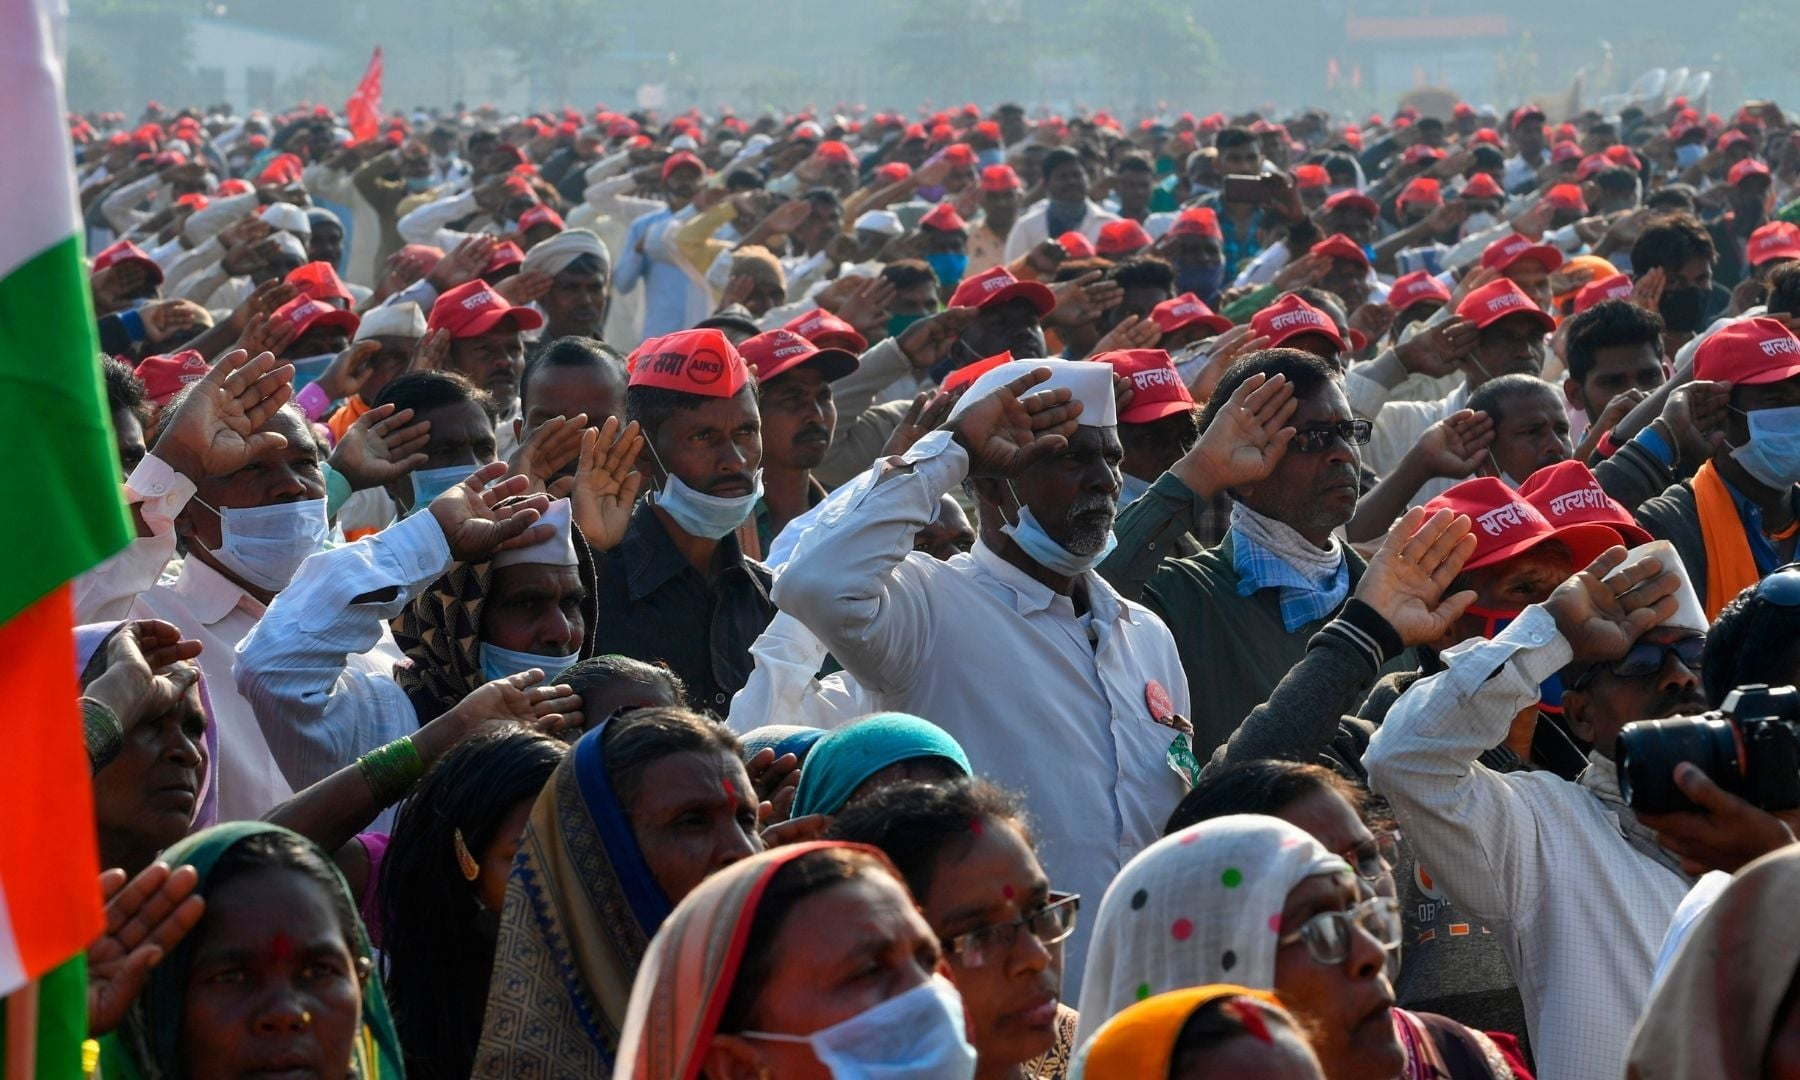 Farmers of Maharashtra state salute during the national anthem as they take part in a rally in Mumbai on Jan 26. — AFP